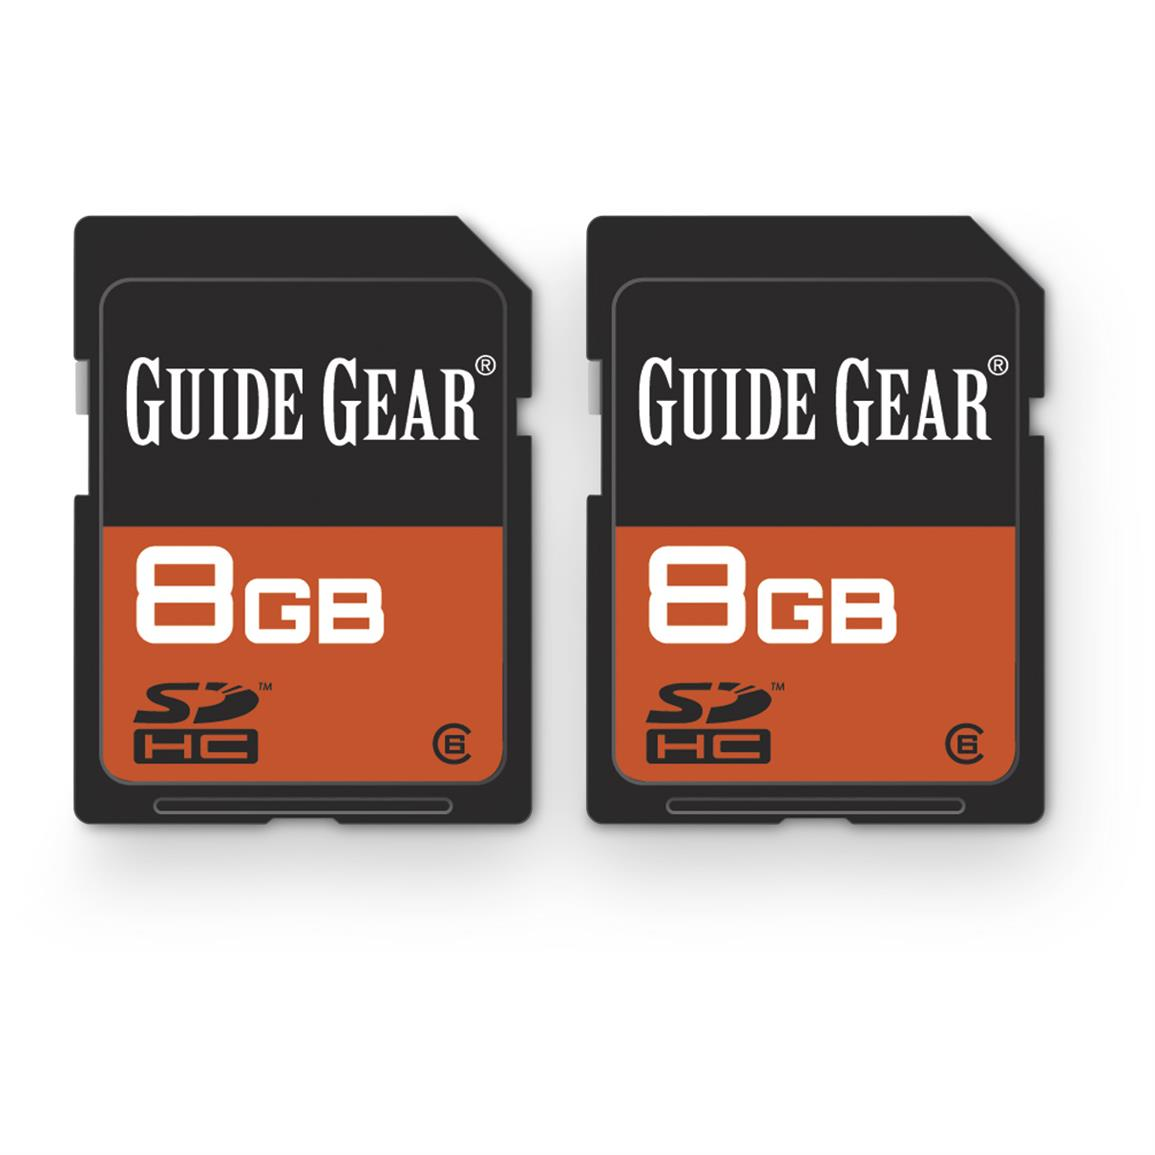 Guide Gear 8GB SD Memory Cards, 2 Pack